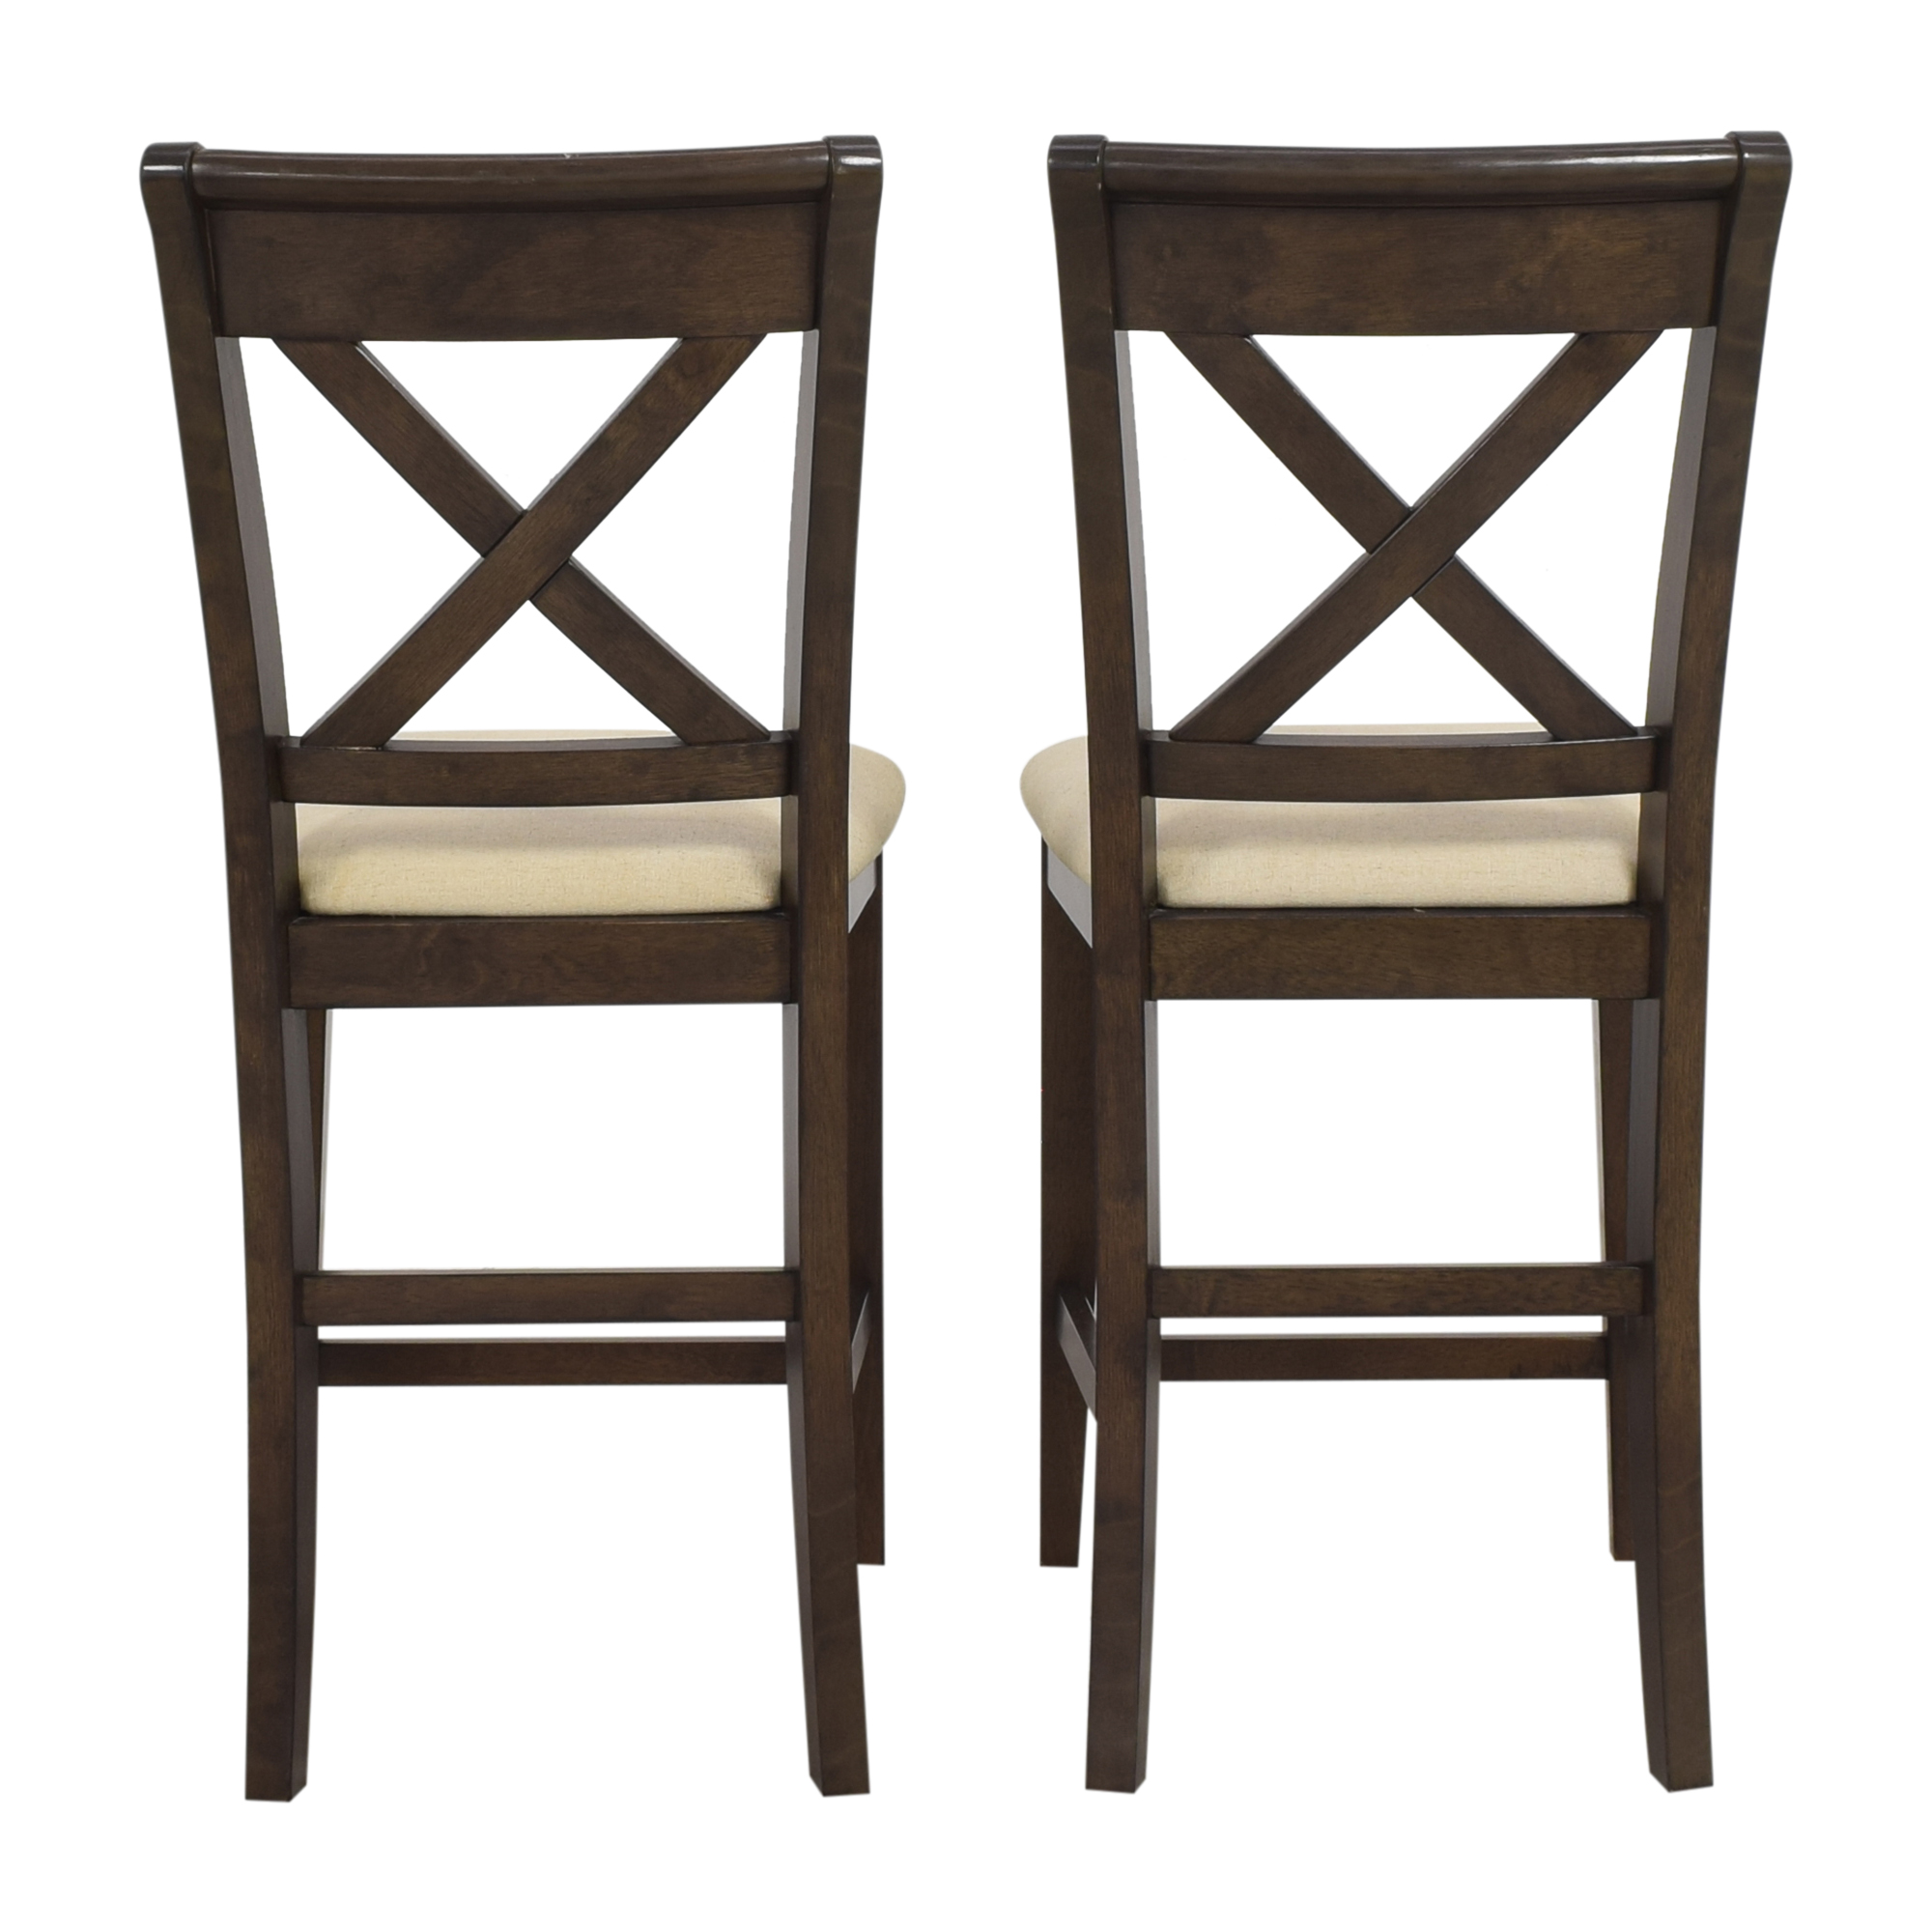 Raymour & Flanigan Raymour & Flanigan Upholstered Stools dimensions